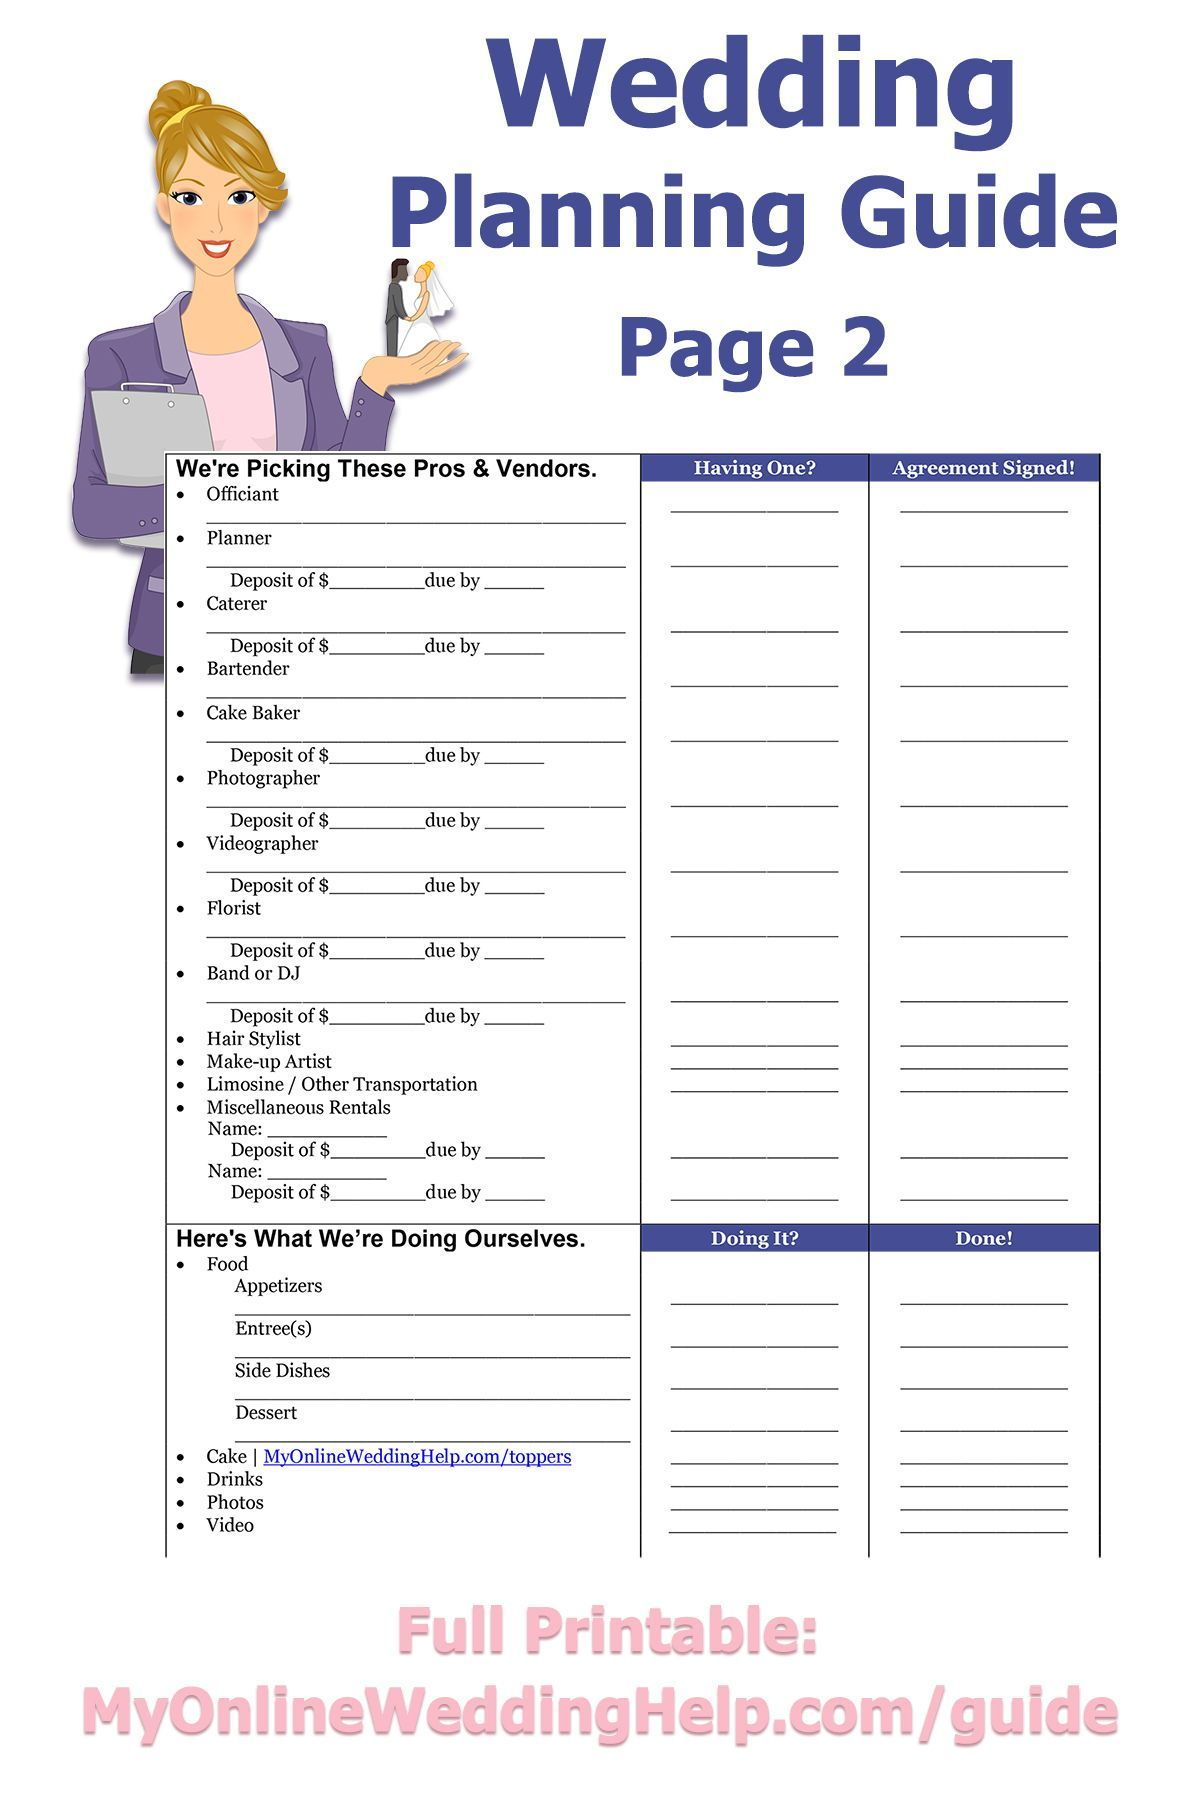 Free printable wedding planning guide diy wedding planning no diy wedding planning checklist is complete without a way to decide on ceremony and receptions solutioingenieria Images